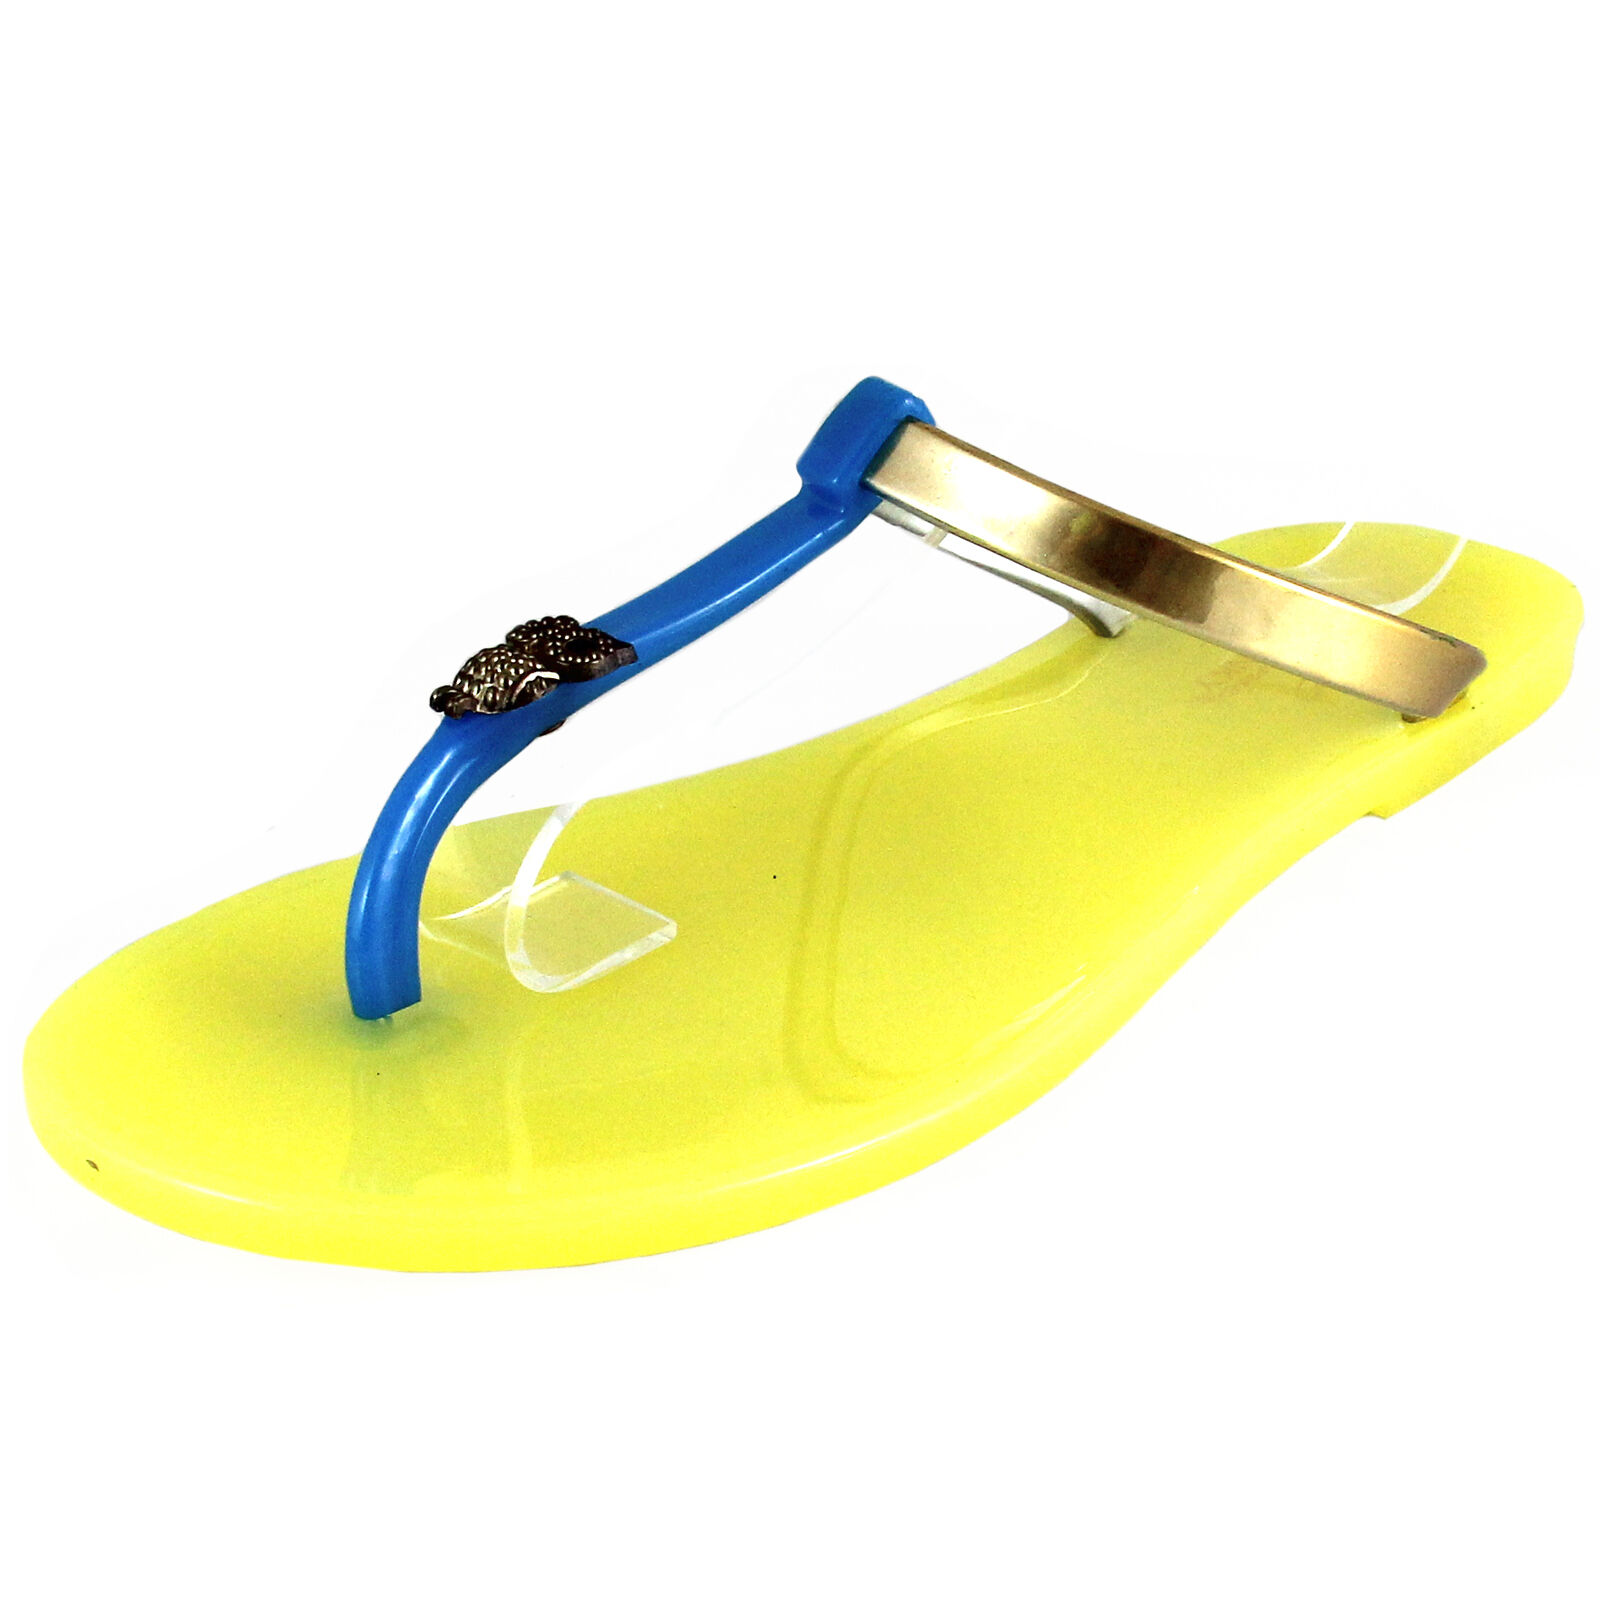 Gentleman/Lady New women's shoes fashion jelly sandals t summer strap open toe casual summer t yellow Many styles comfortability Superb craftsmanship VN357 705c5e